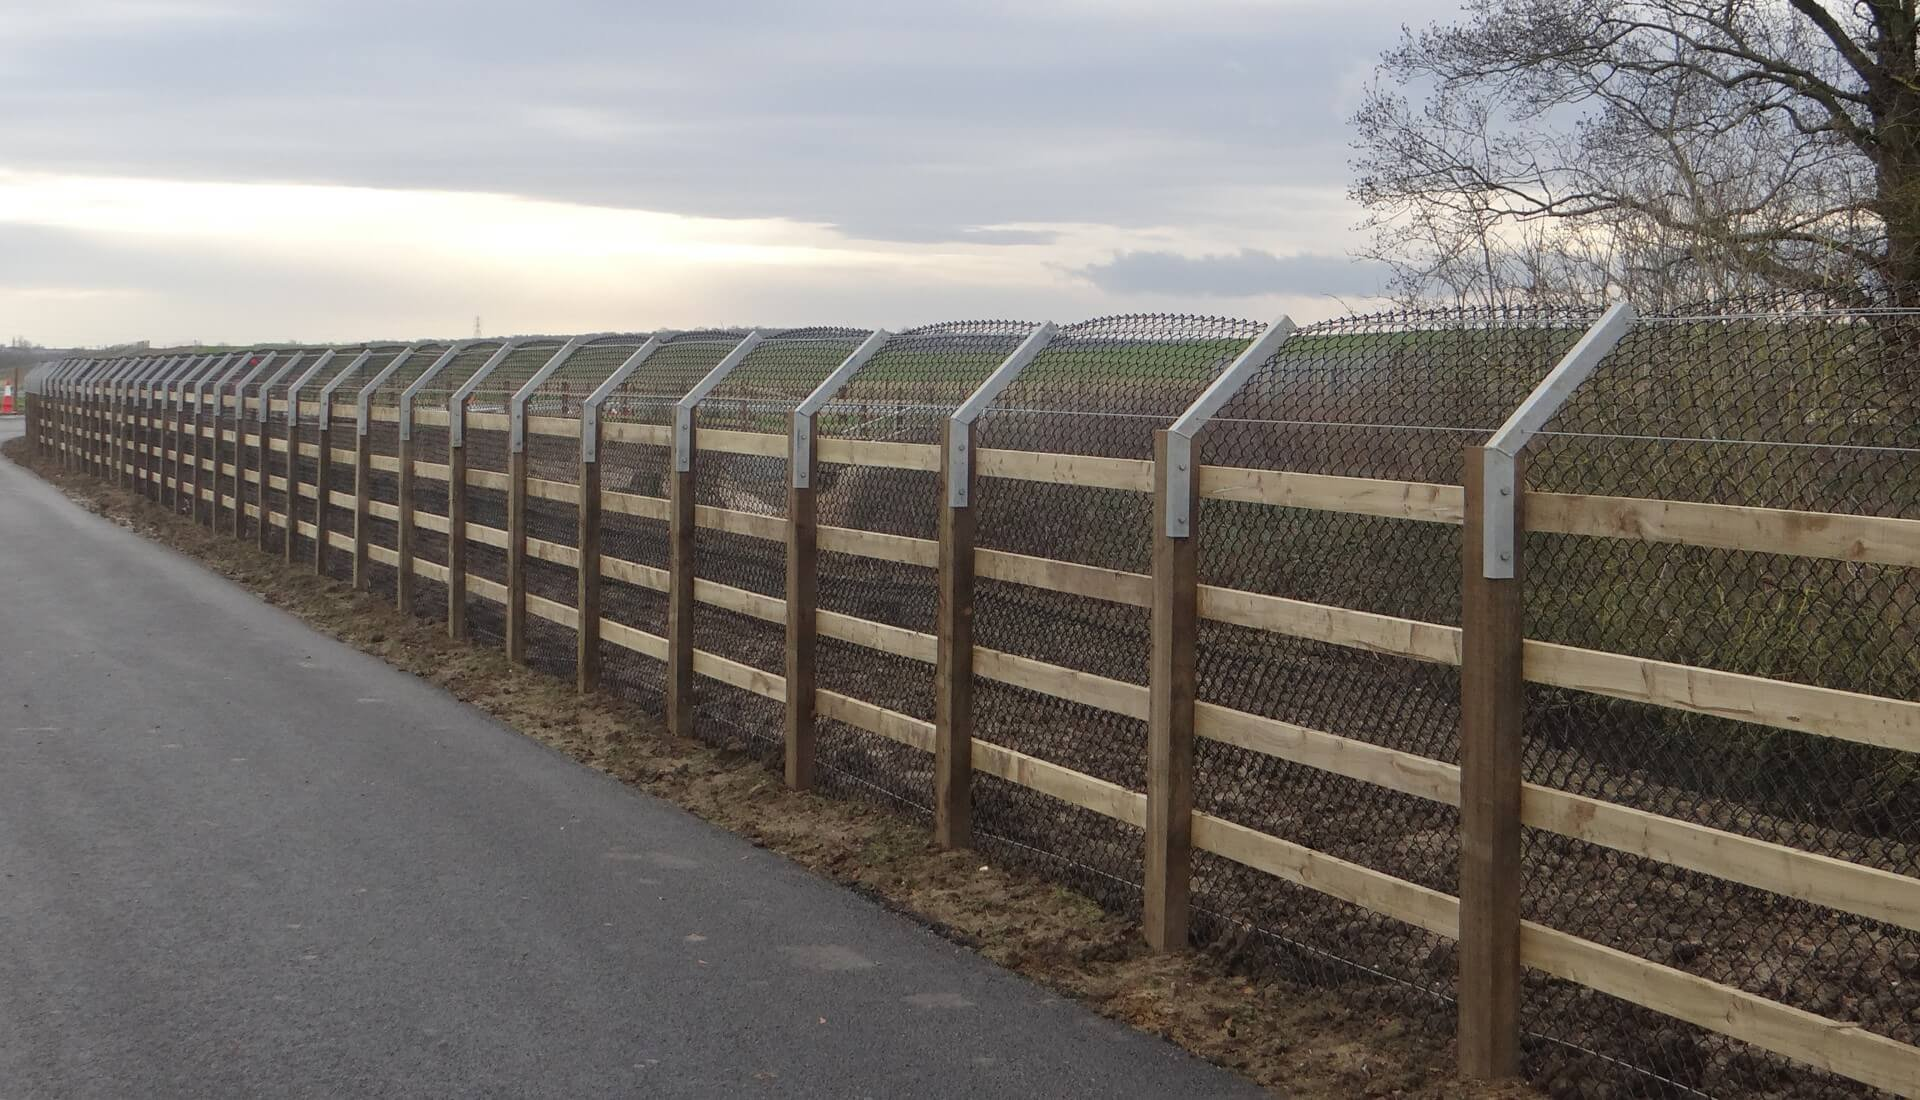 A14 Cambridge to Huntingdon Fence Otter Proof